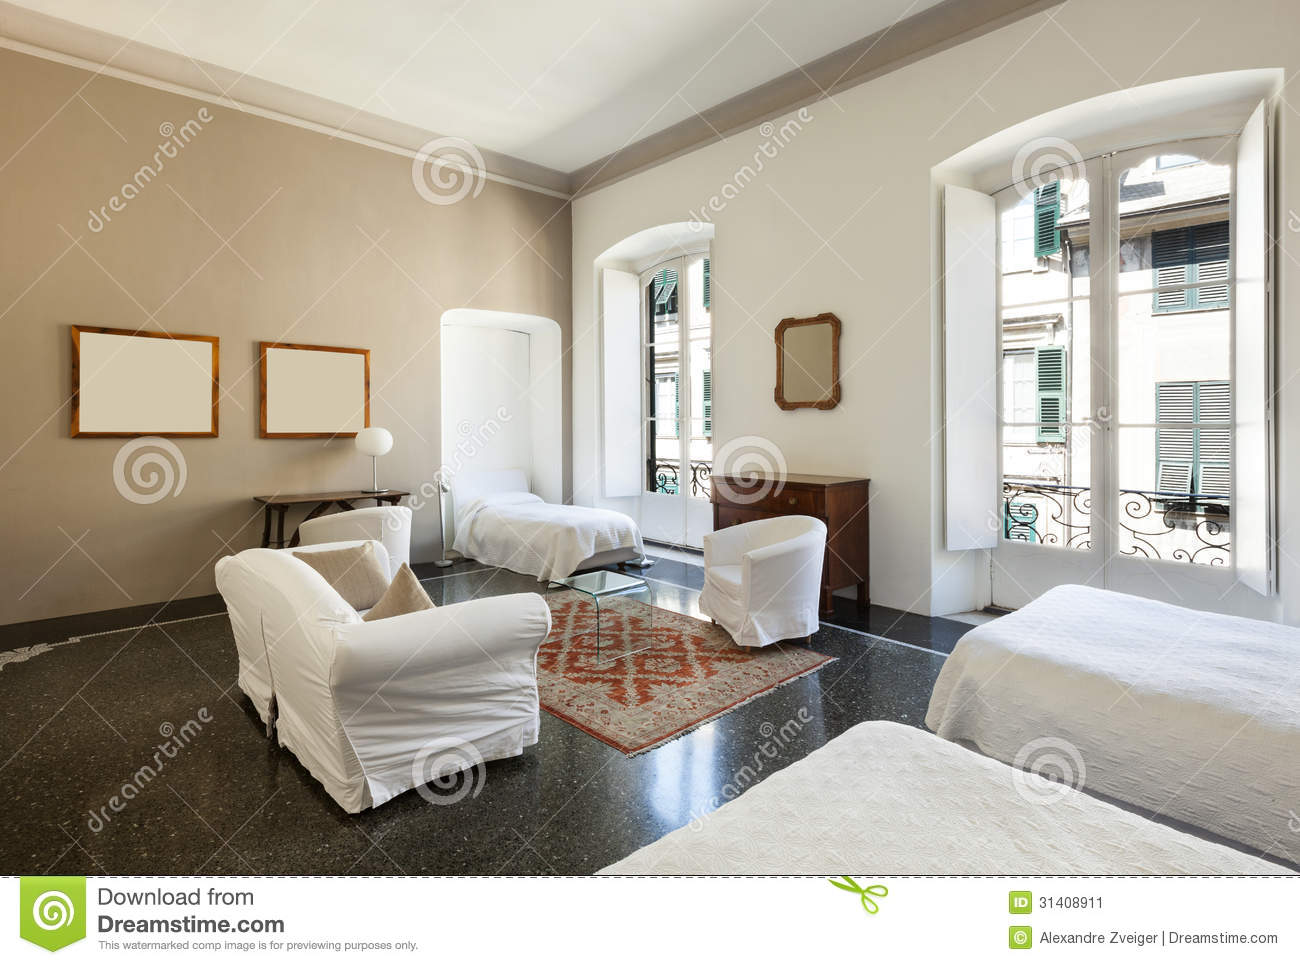 Belle chambre d 39 h tel image stock image 31408911 for Chambre d hotels